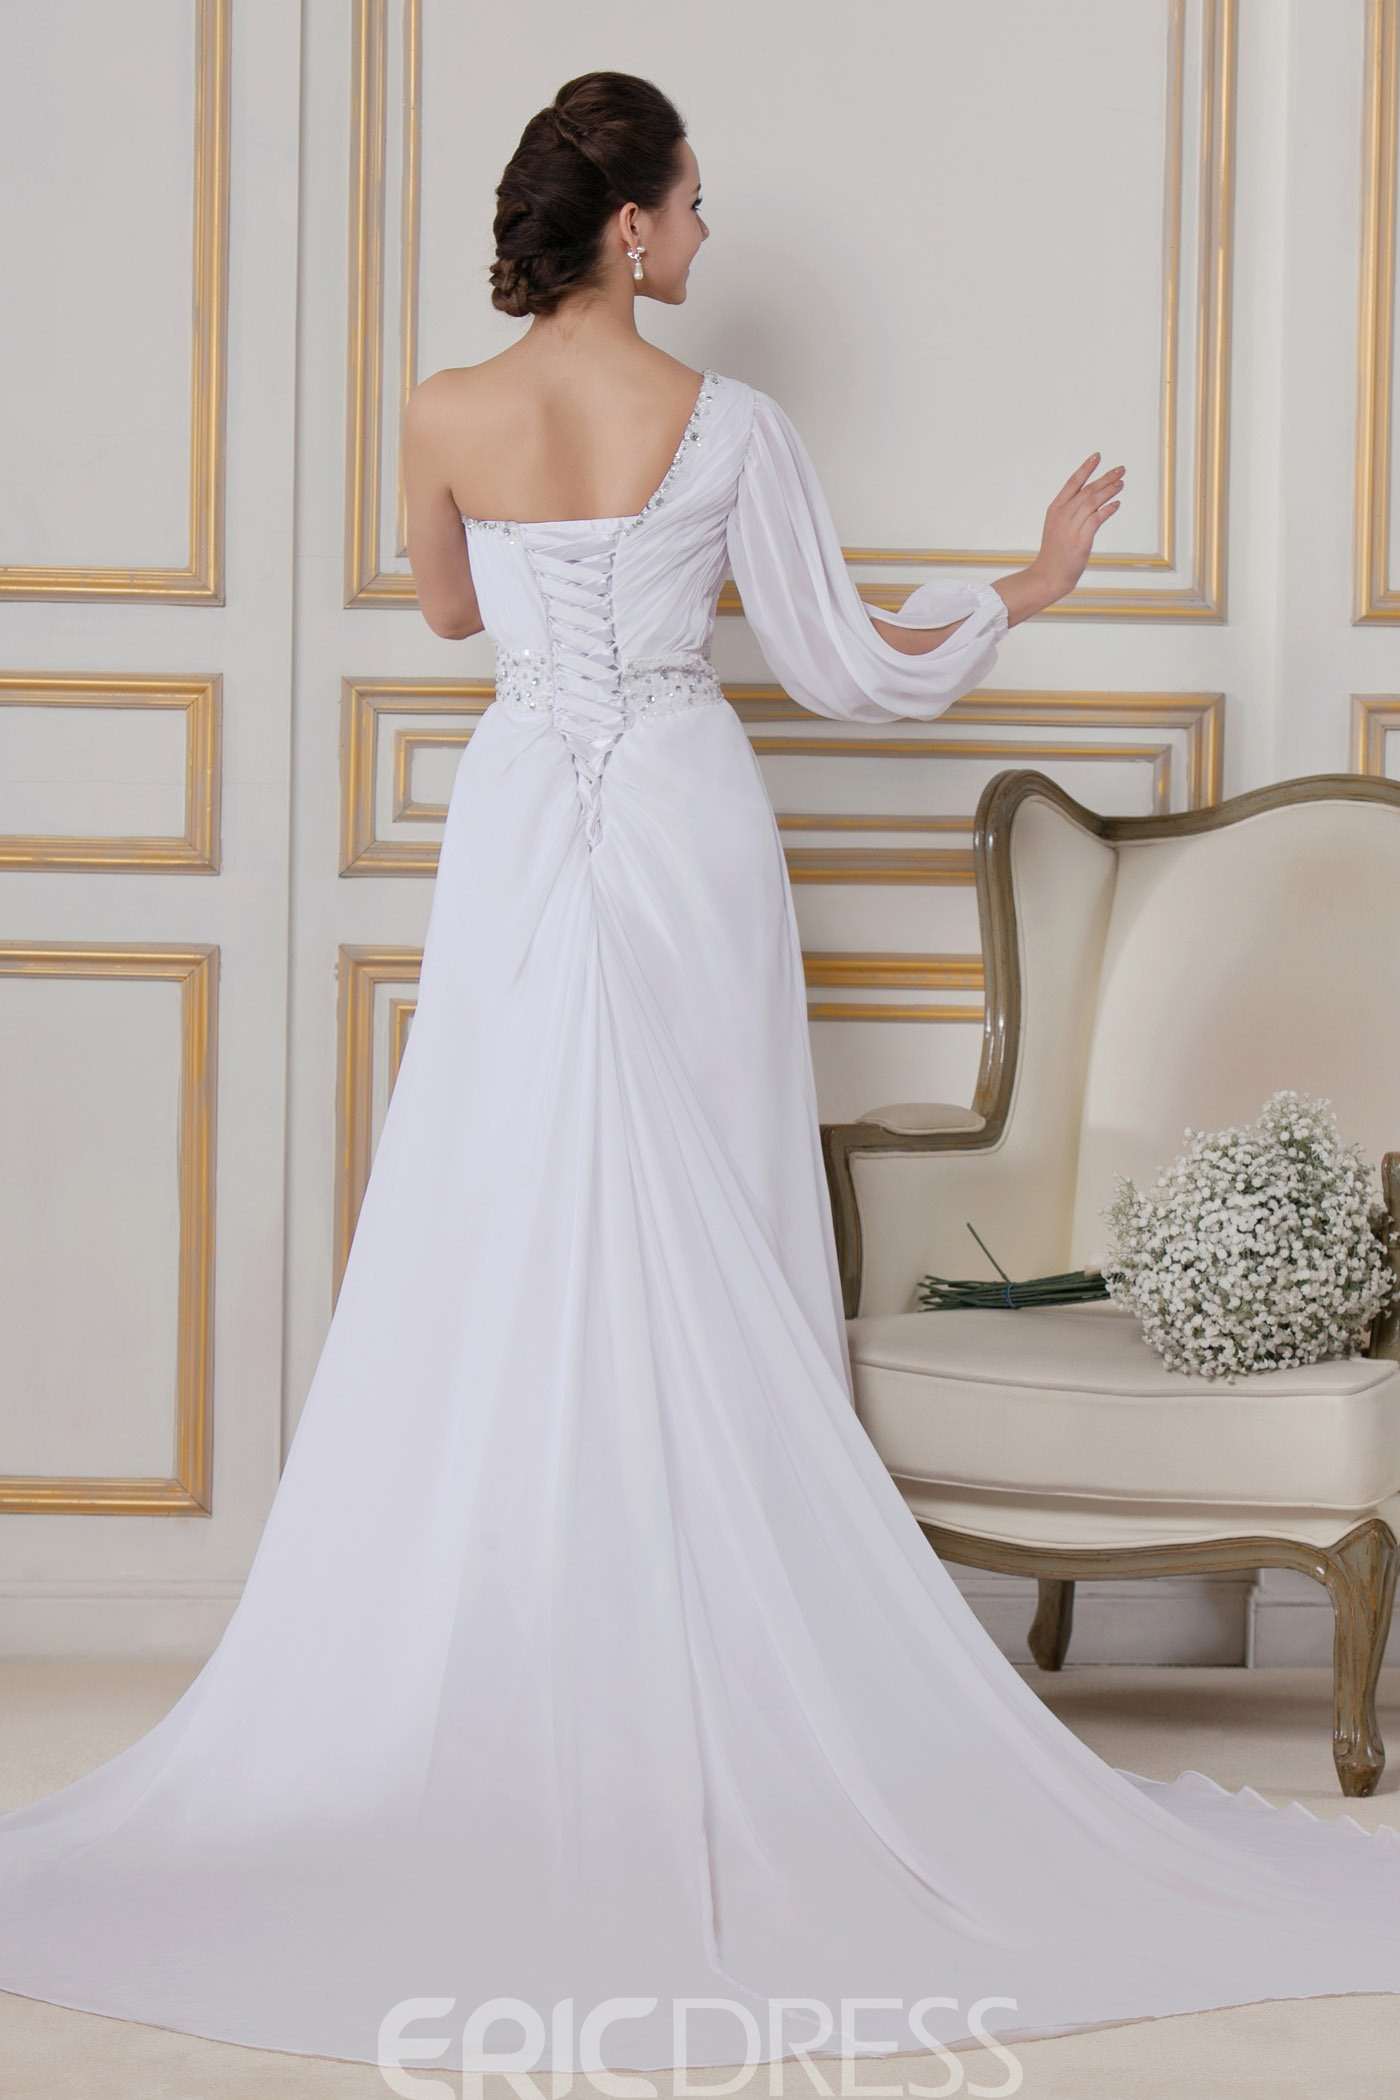 Classy Sheath/Column One-Shoulder Floor-length Chapel Sandra's Wedding Dress